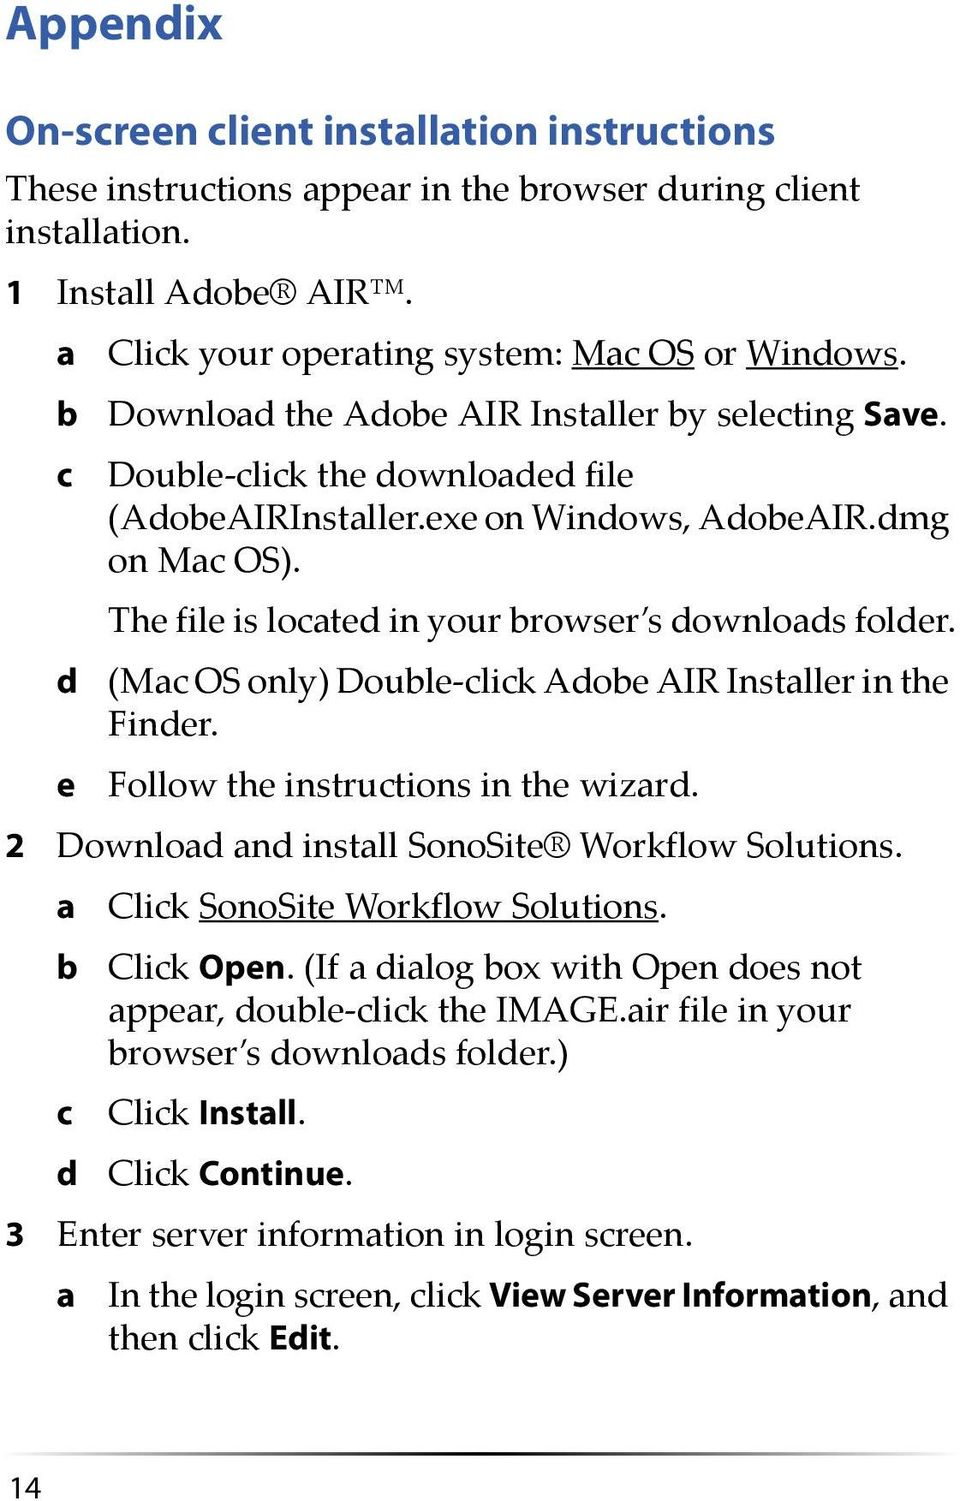 The file is located in your browser s downloads folder. d (Mac OS only) Double click Adobe AIR Installer in the Finder. e Follow the instructions in the wizard.